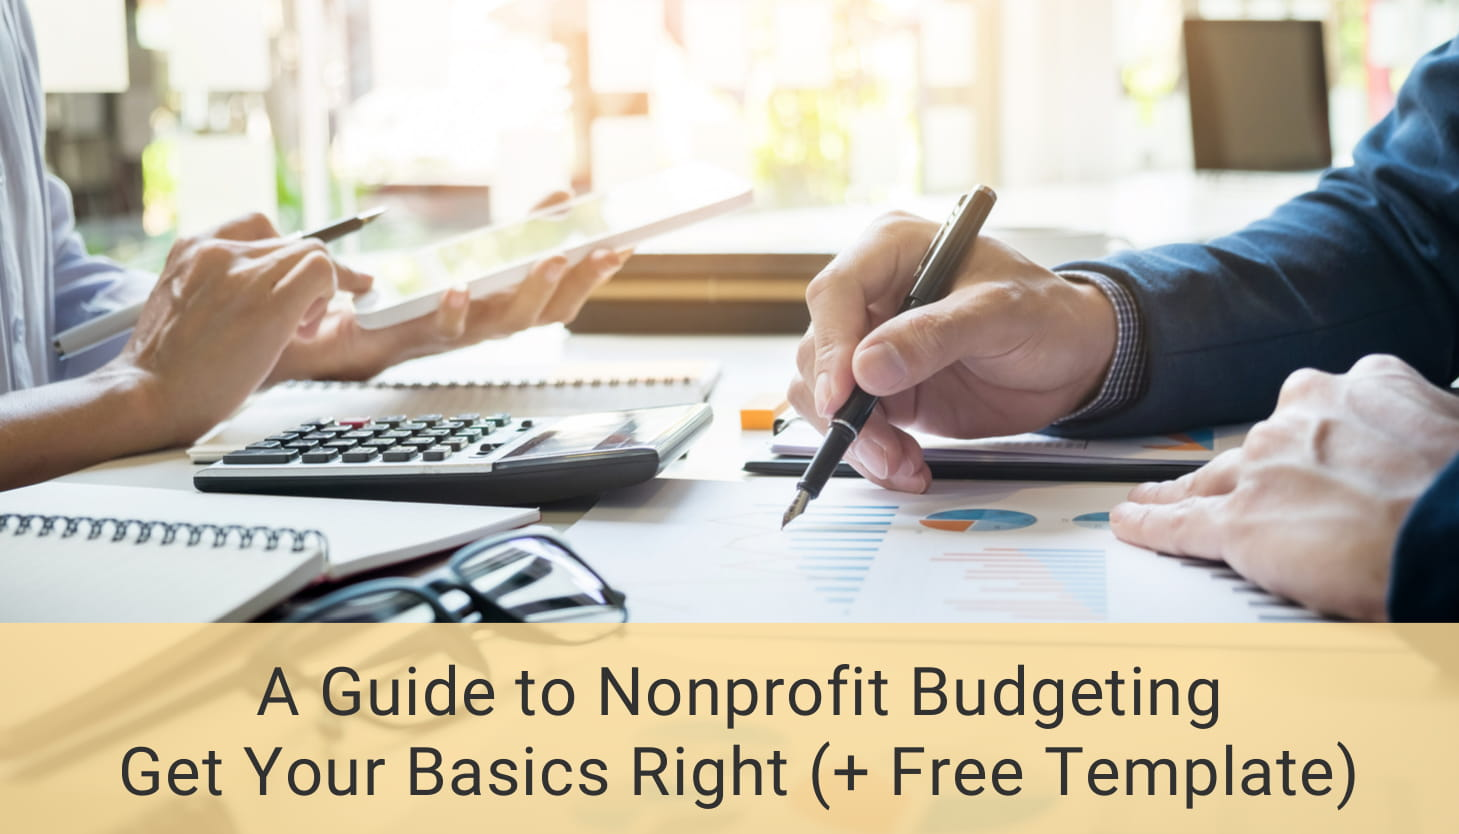 A Guide to Nonprofit Budgeting: Get Your Basics Right (+ Free Template)